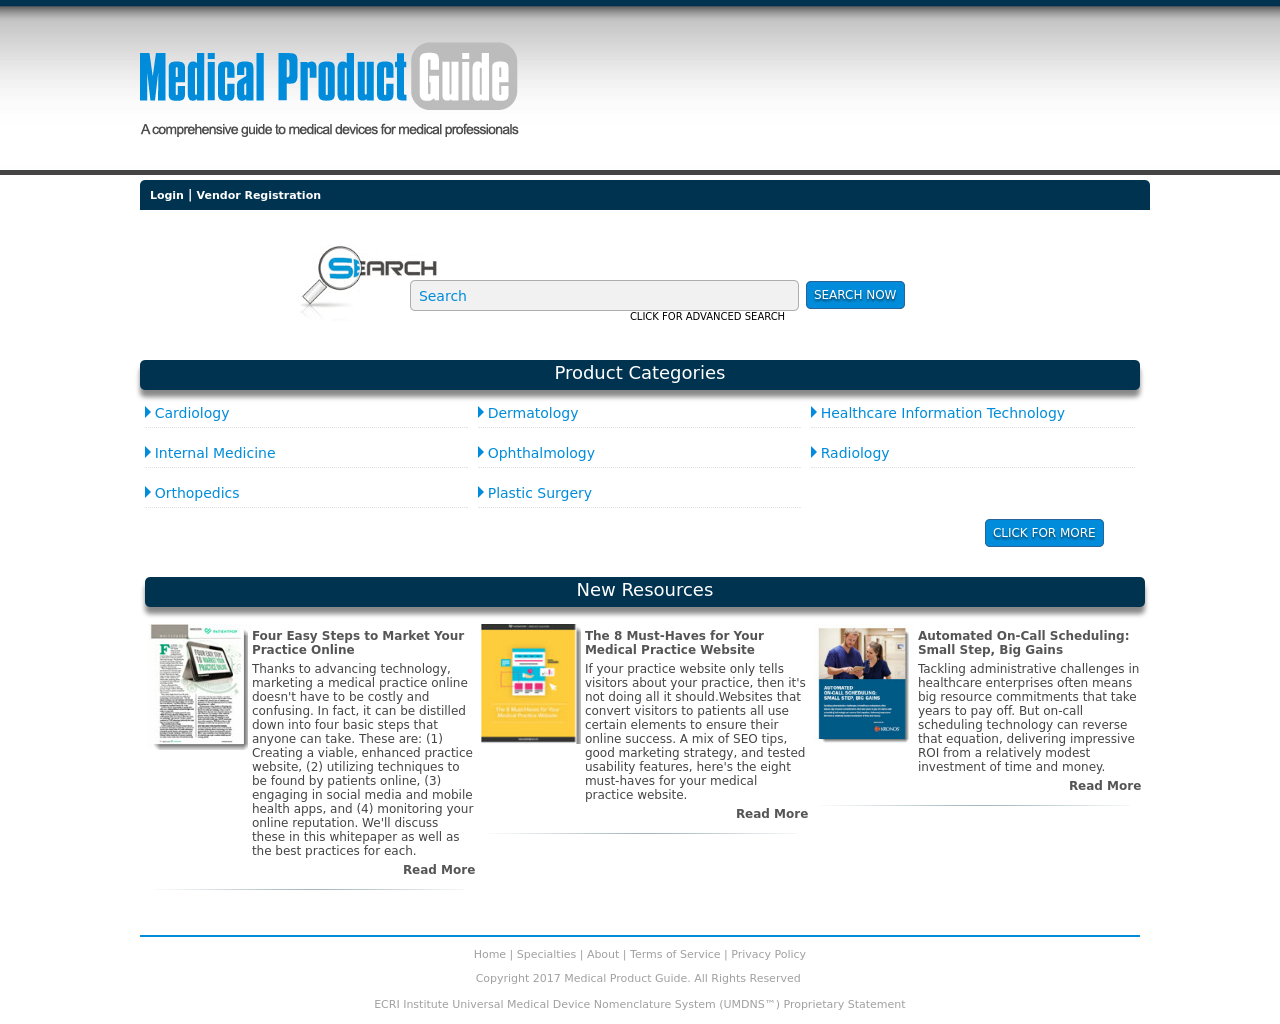 Medical-Product-Guide-Advertising-Reviews-Pricing